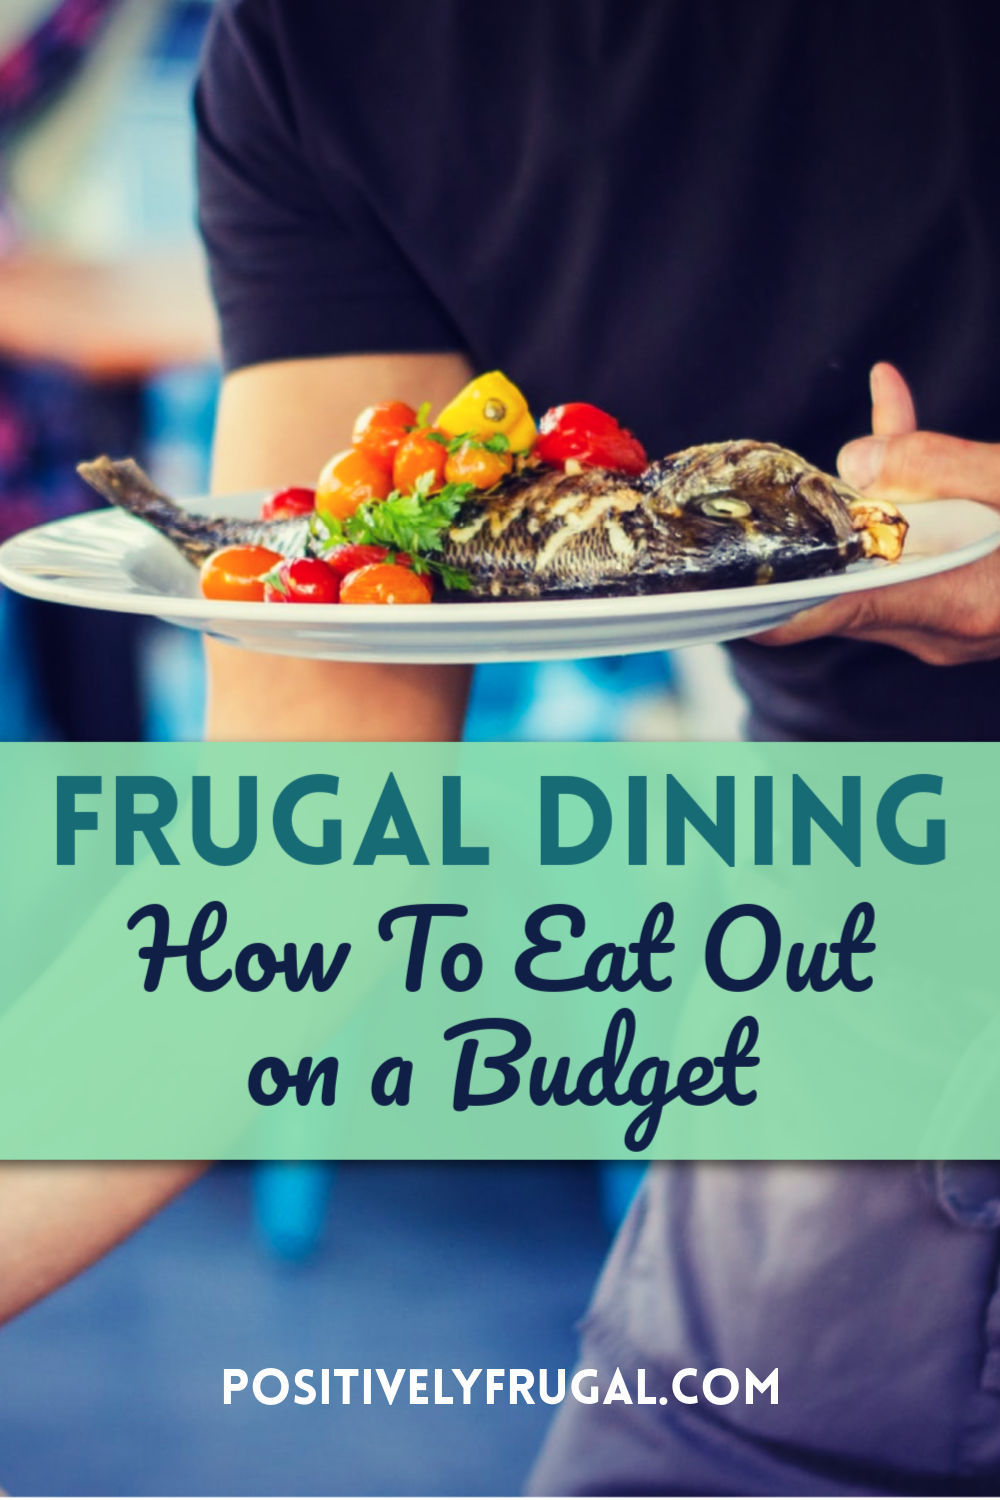 How to Eat Out on a Budget by PositivelyFrugal.com